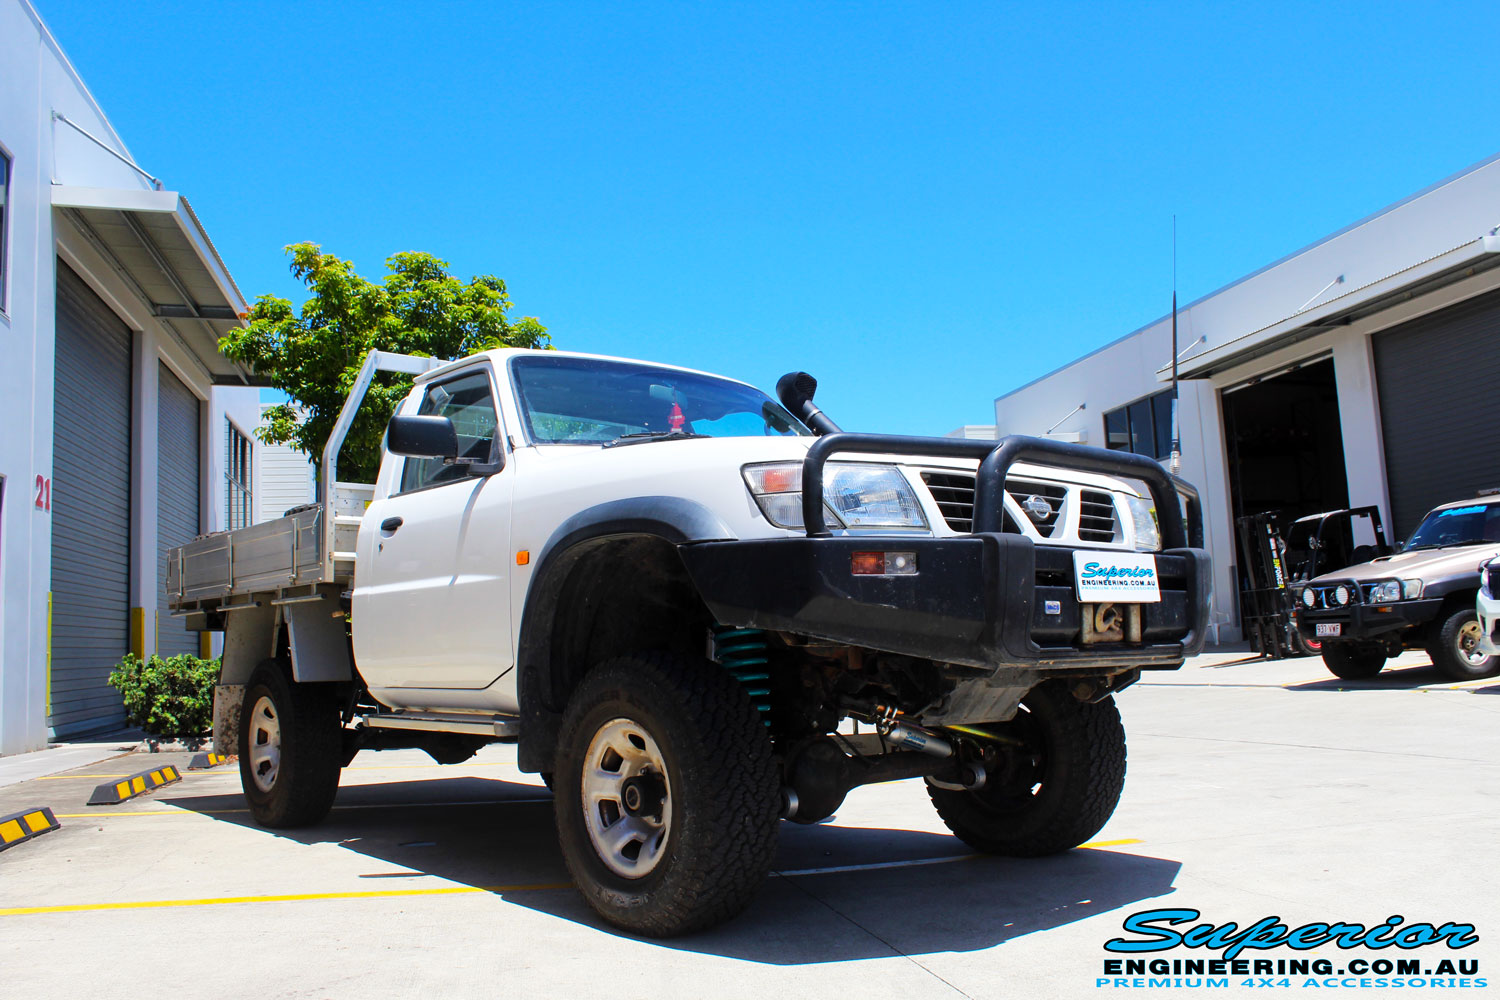 "Right front side view of a White Nissan GU Patrol Ute Wagon after fitment of a Fox 2.0 Performance Series IFP Hybrid Dropped Radius 5"" Lift Kit with Superior Sway Bar Extensions"